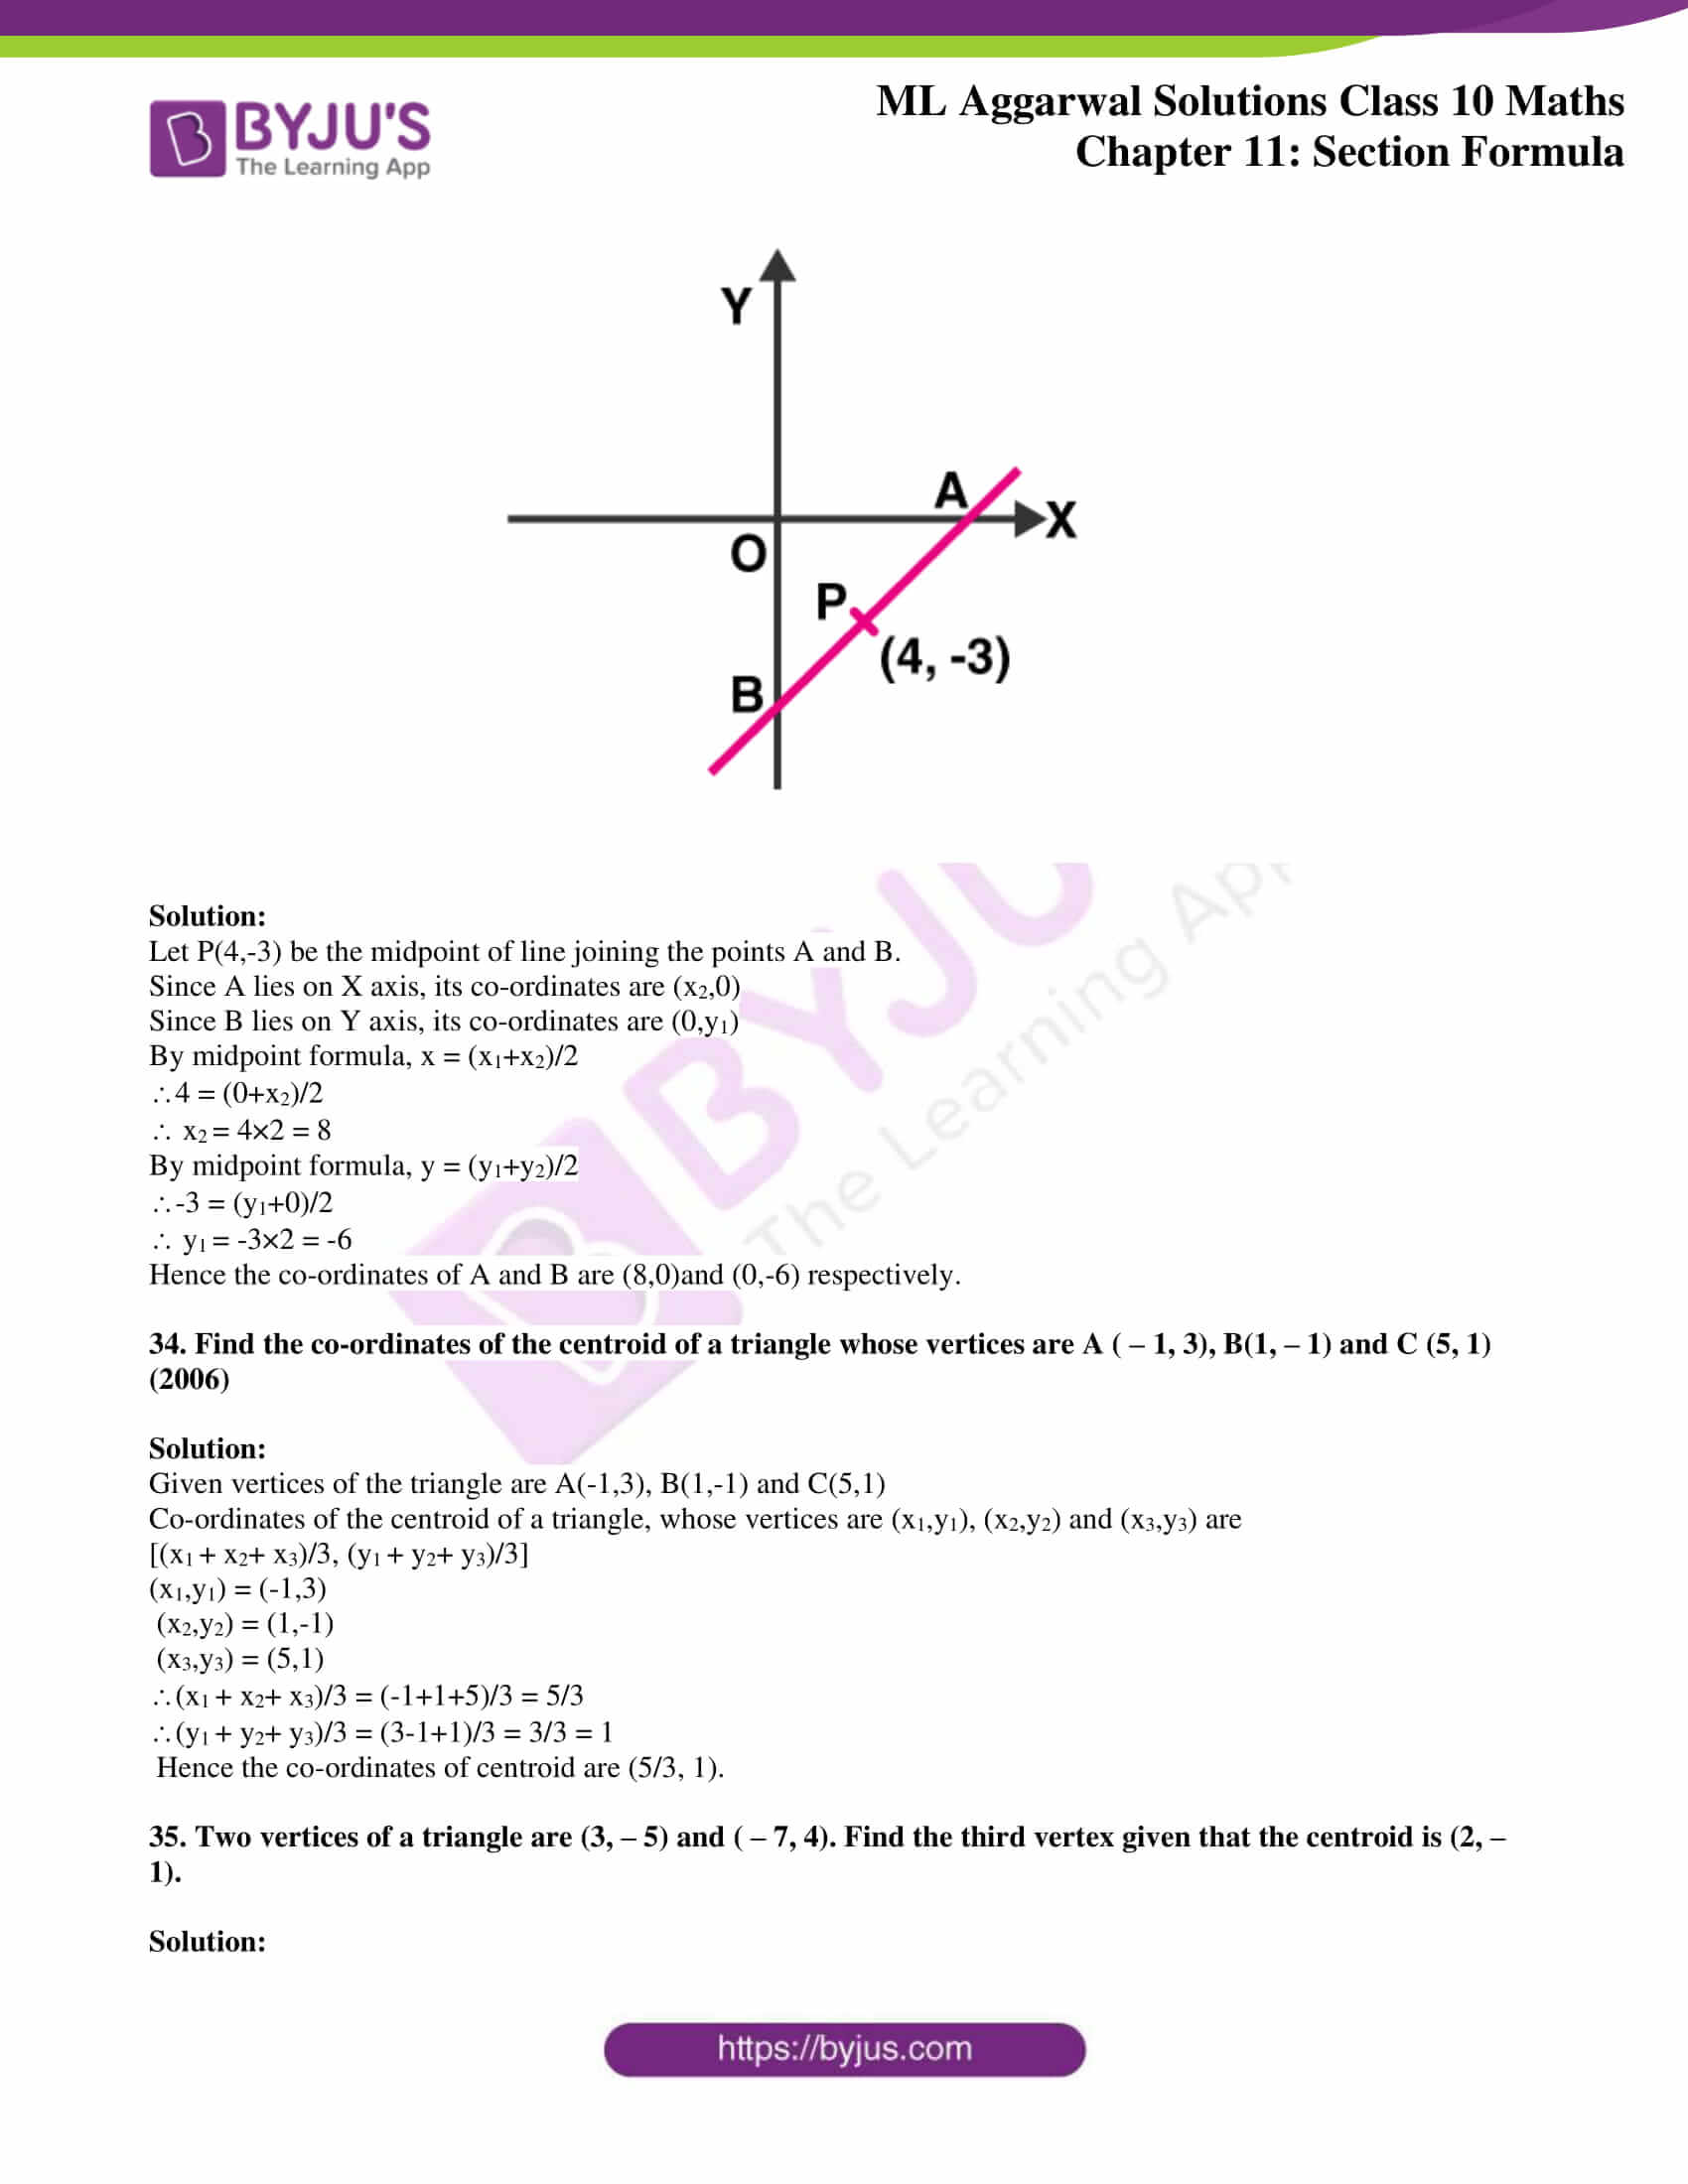 ml aggarwal solutions class 10 maths chapter 11 28